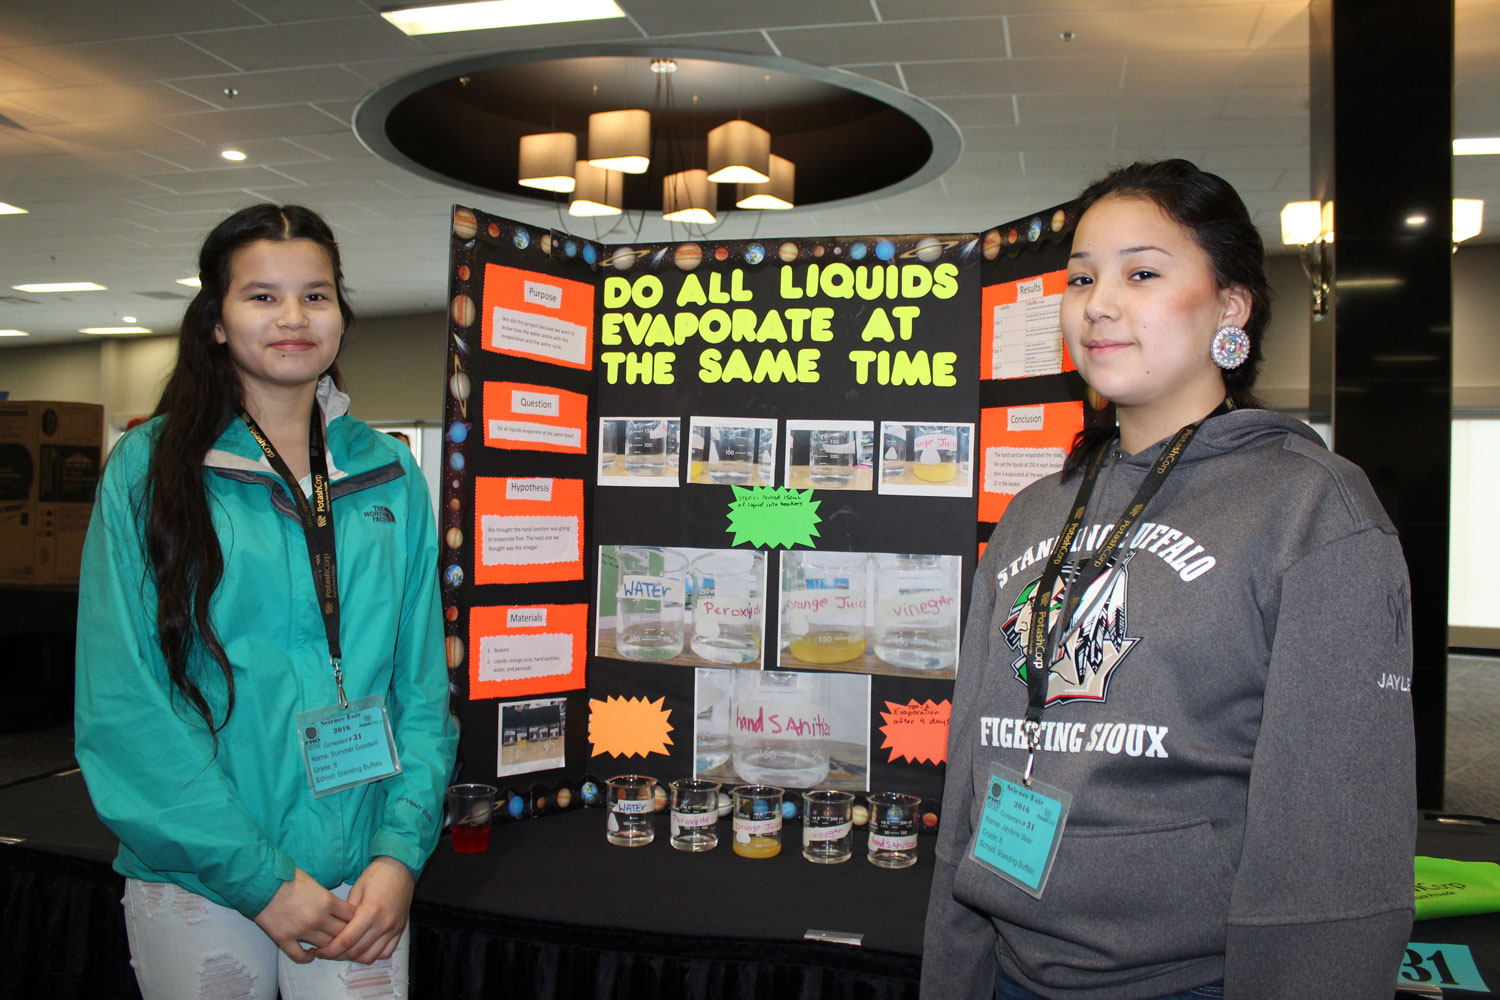 Summer Goodwill and her partner Jane stand in front of their science project. They let others know that water evaporation impacts First Nations communities.